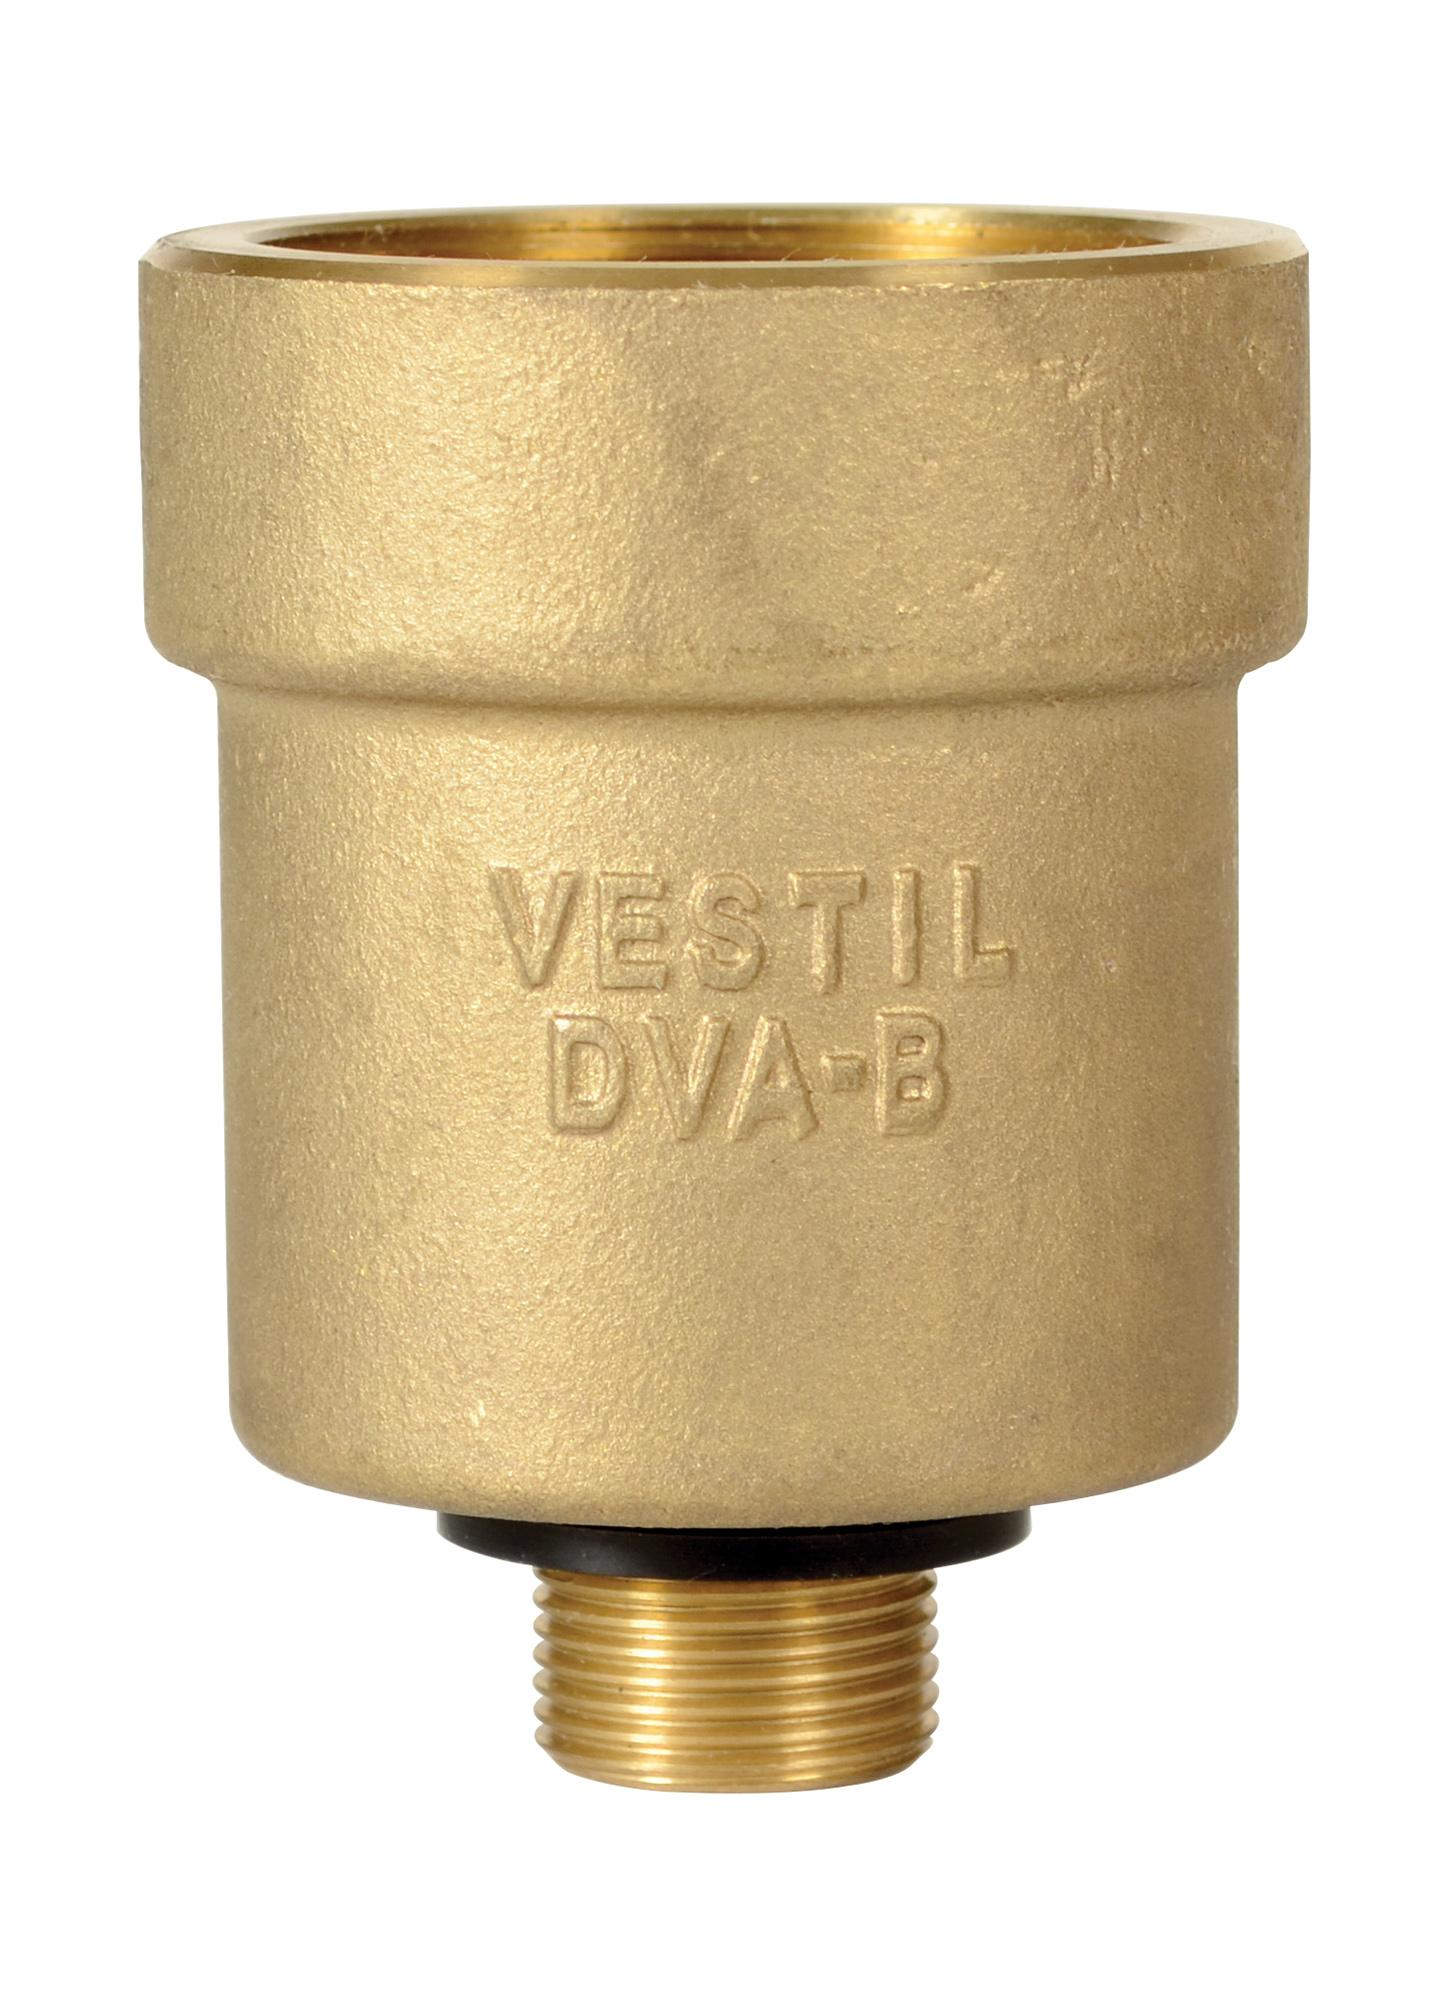 Vestil Brass Drum Vent Adaptor Model No. DVA-B